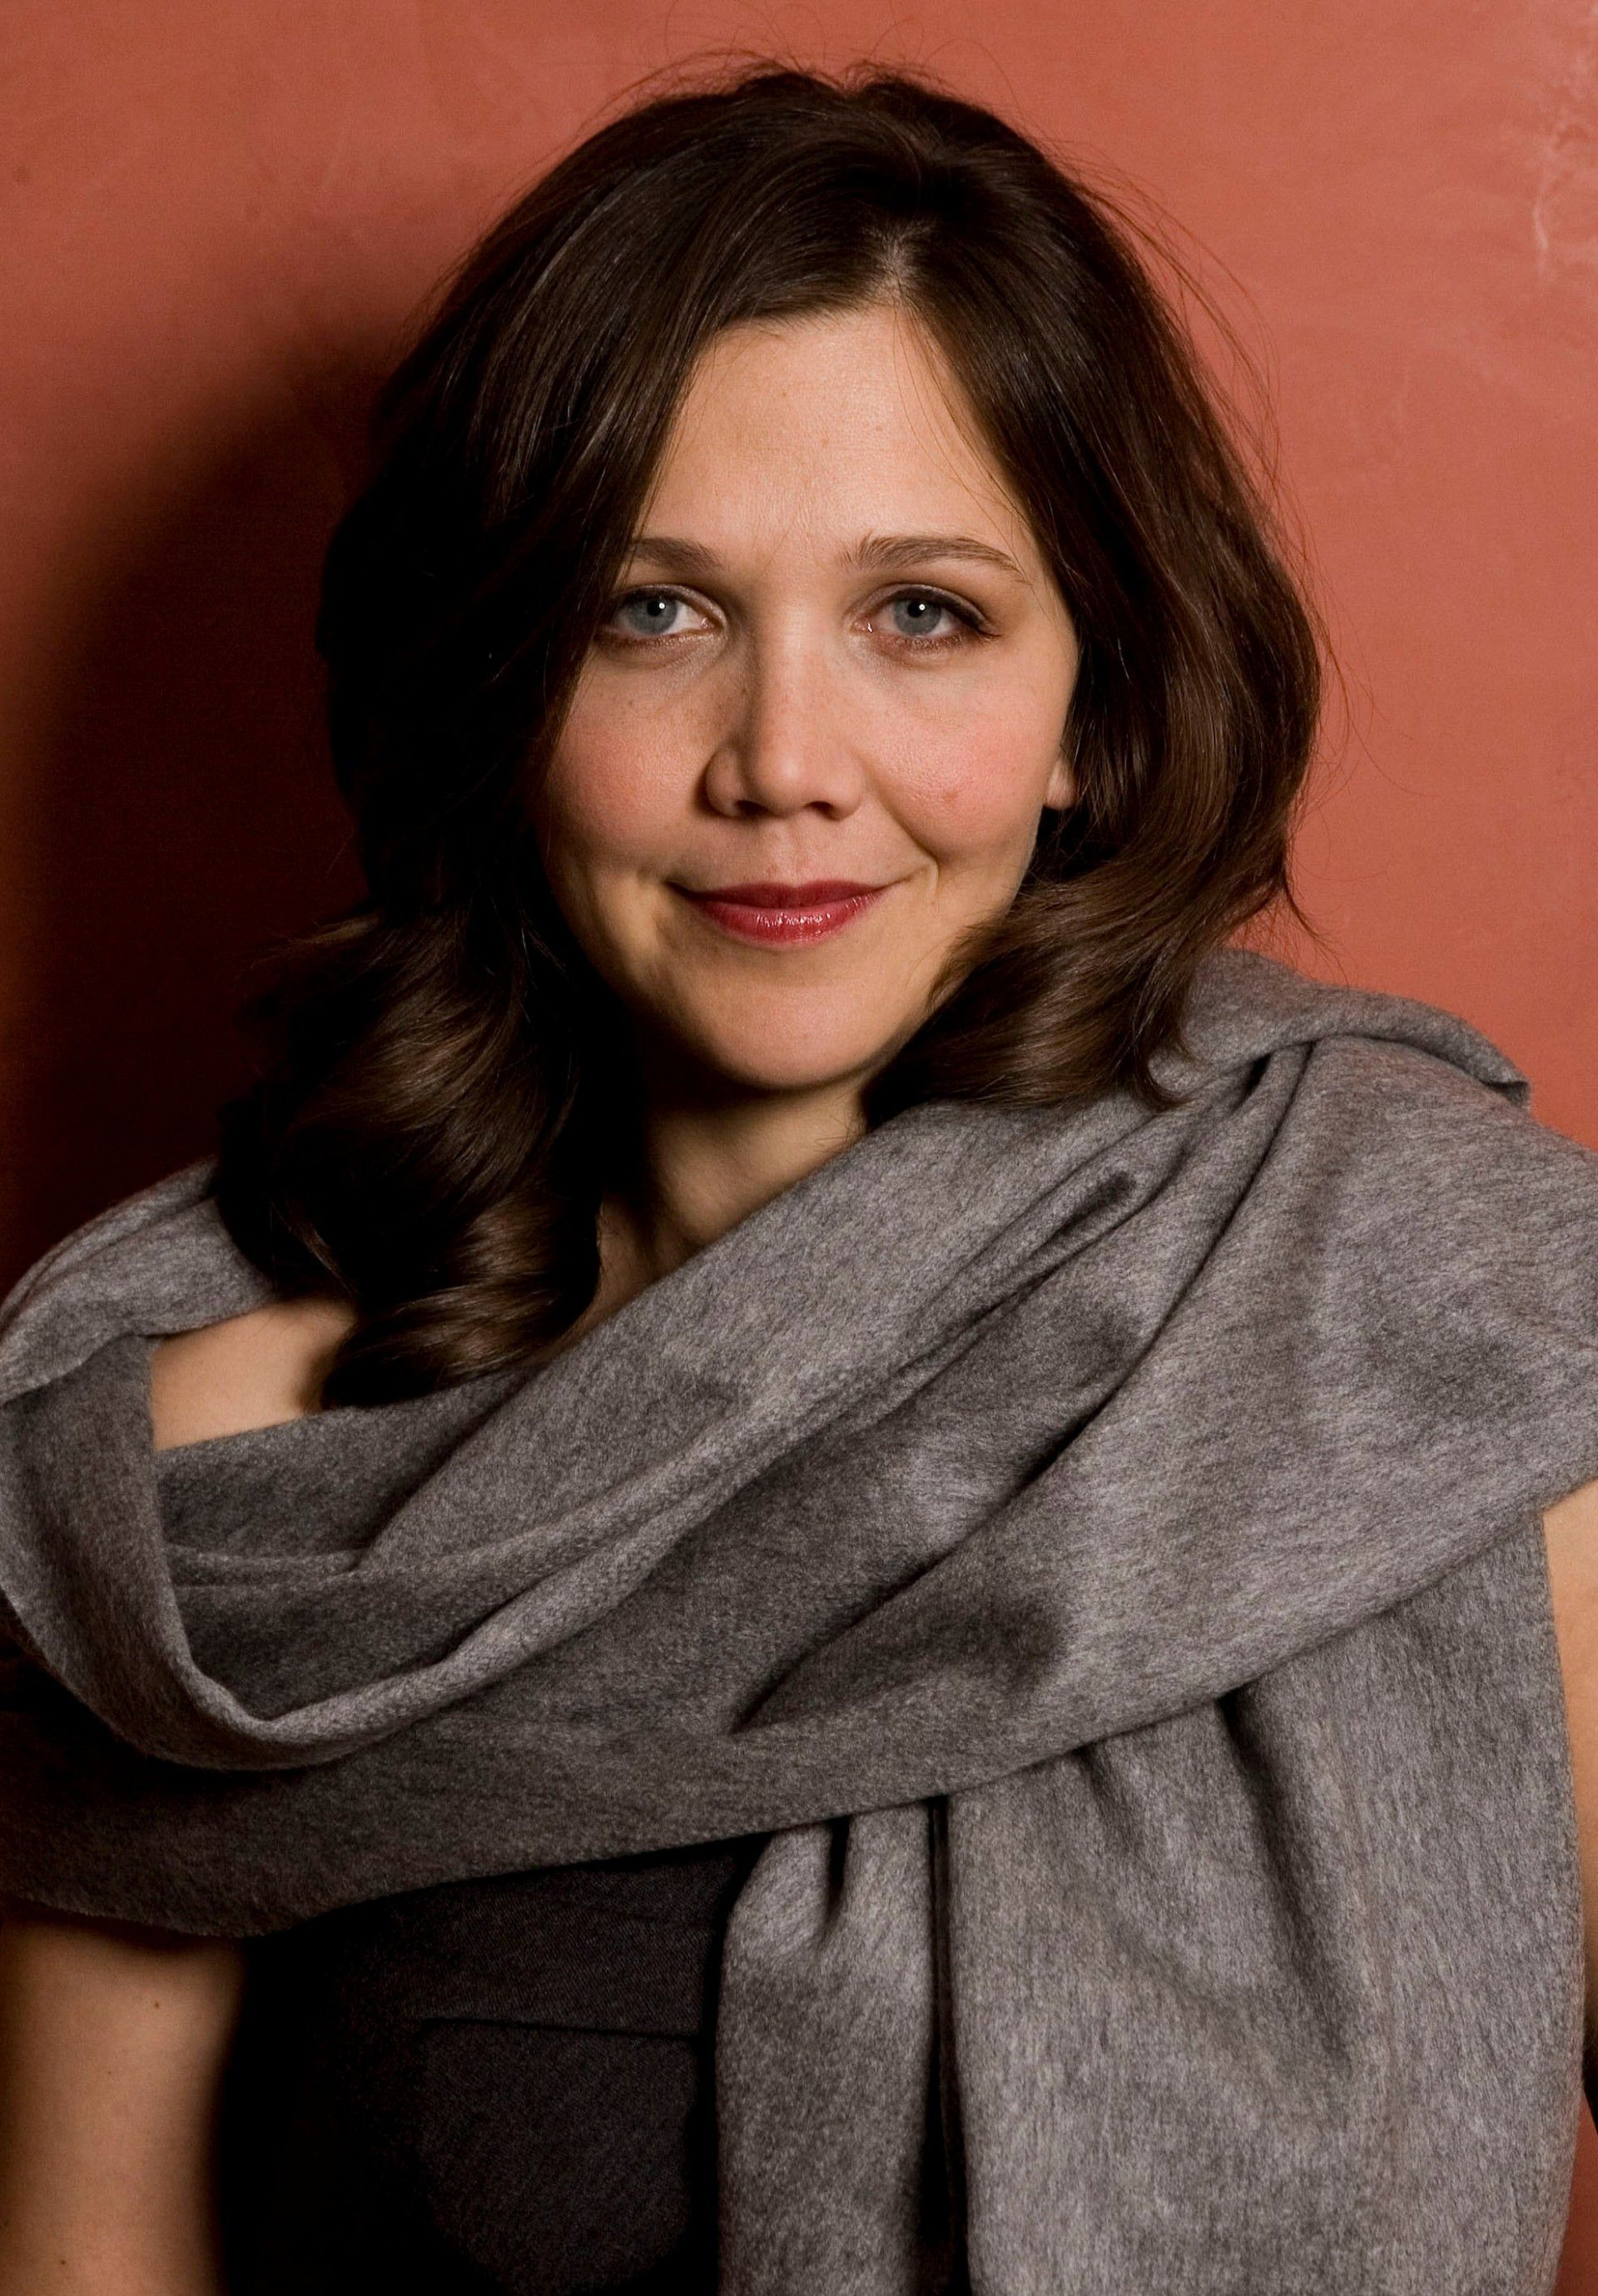 Awesome Maggie Gyllenhaal Hq Wallpaper Full Hd Pictures